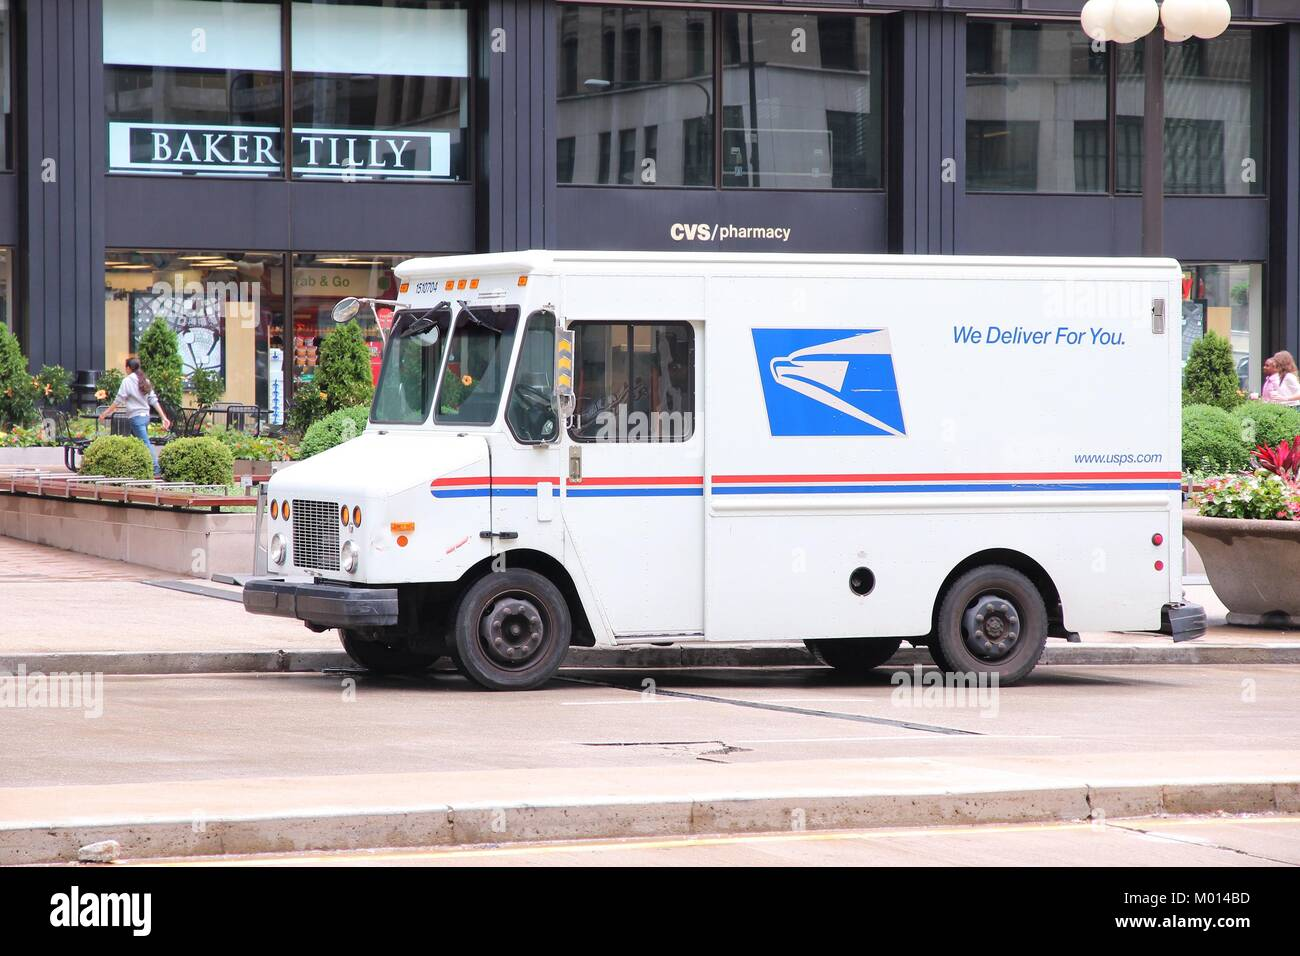 Usps Mail Truck High Resolution Stock Photography And Images Alamy